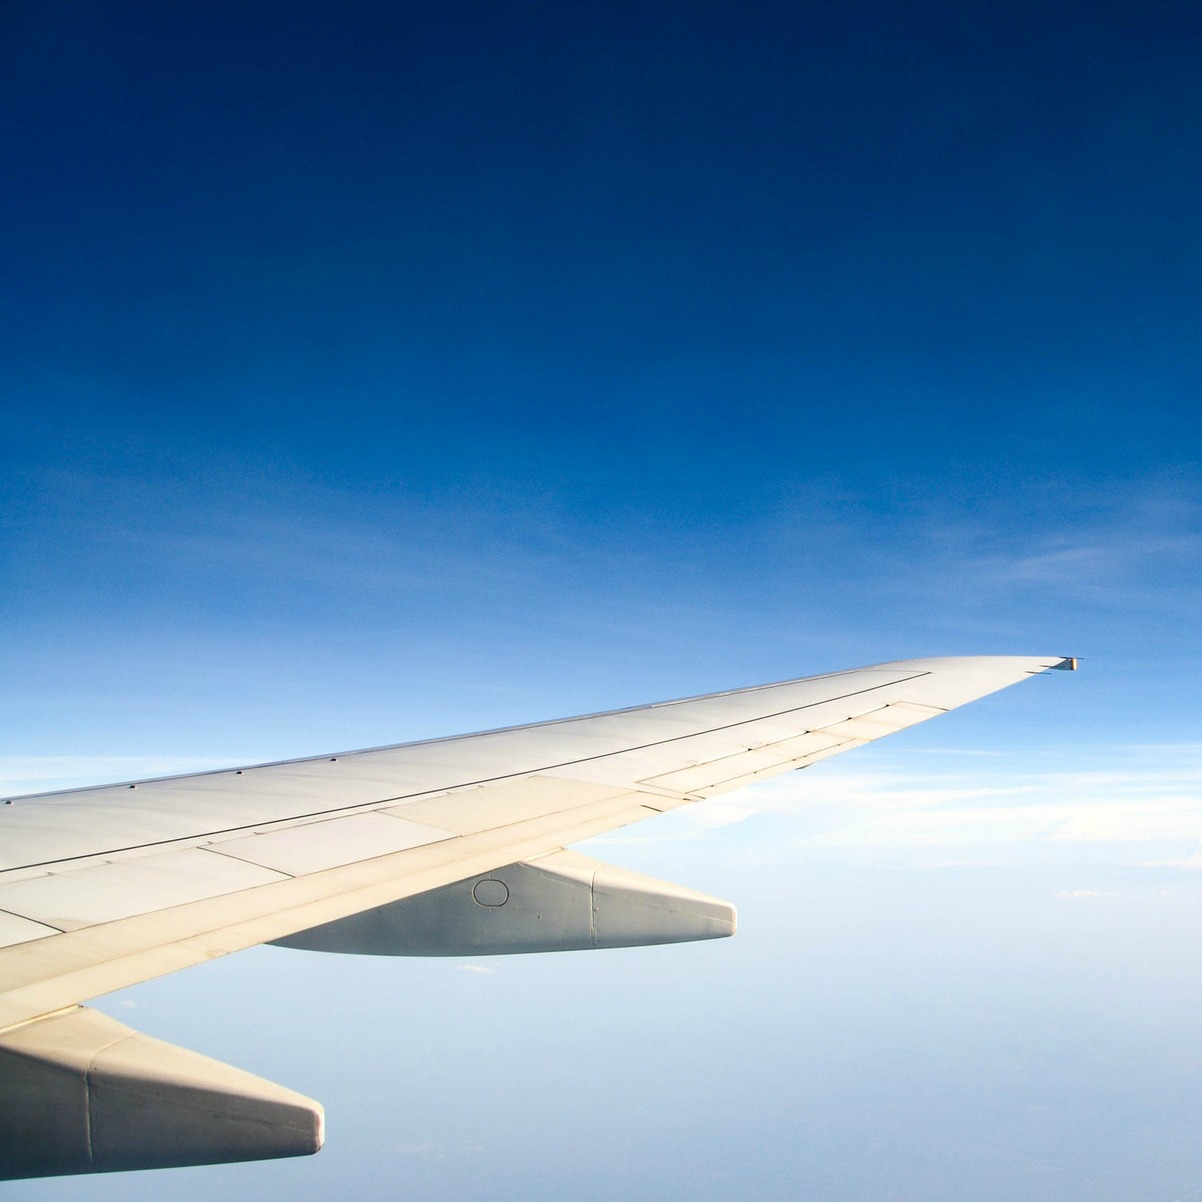 3 Mistakes New Aviation Marketers Make